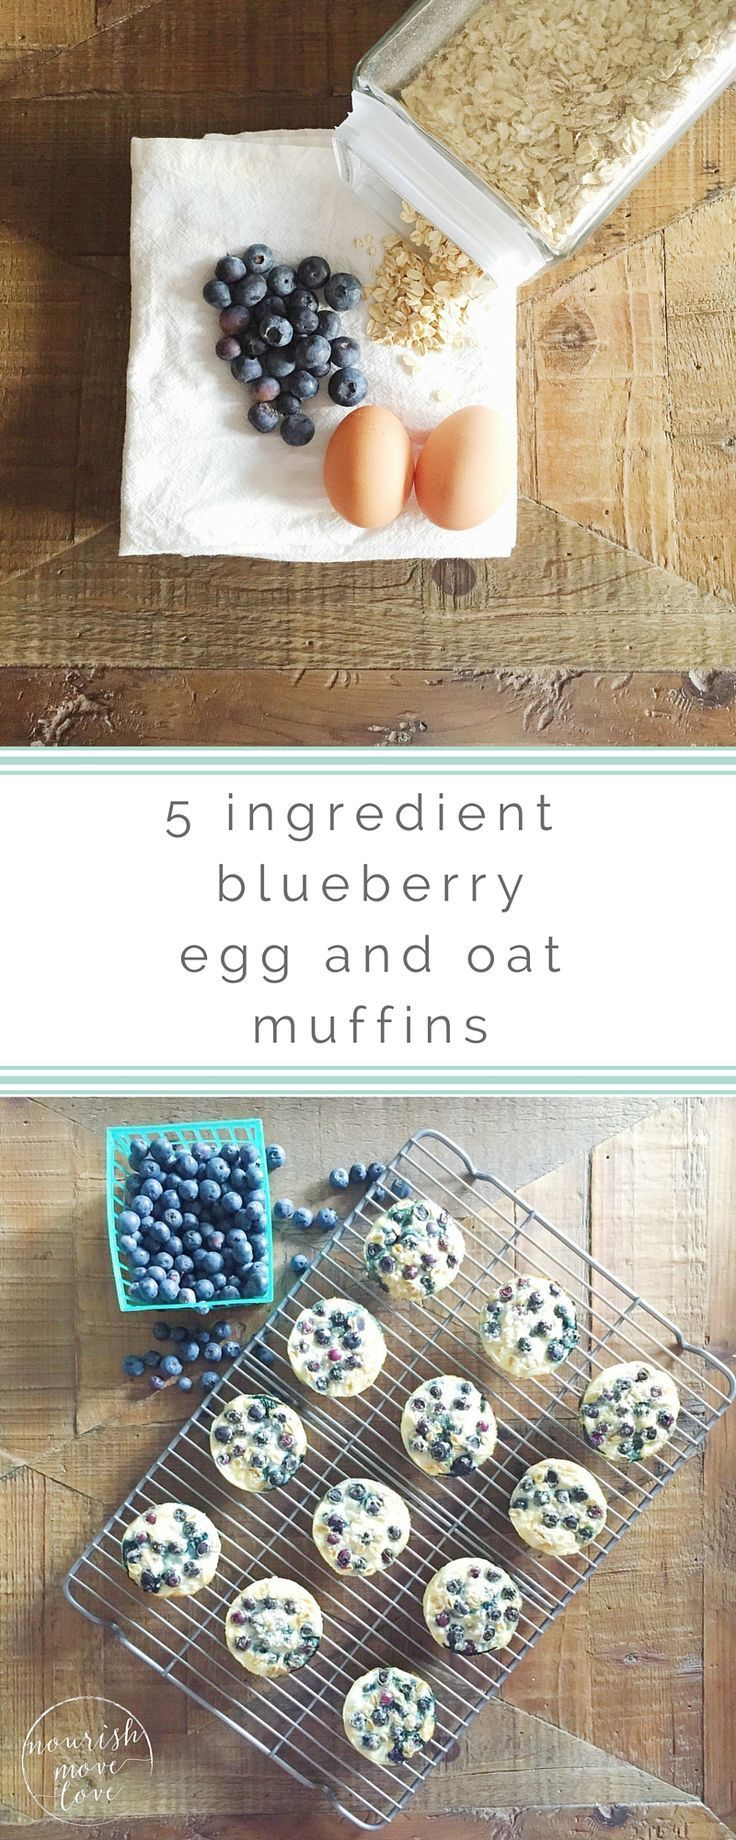 theyre the healthiest blueberry muffin youll ever eat. in fact i discovered these little gems while i was cutting weight for my very first fitness competition {needless to say i took a break from them for a while, but they are still one of my favorite g